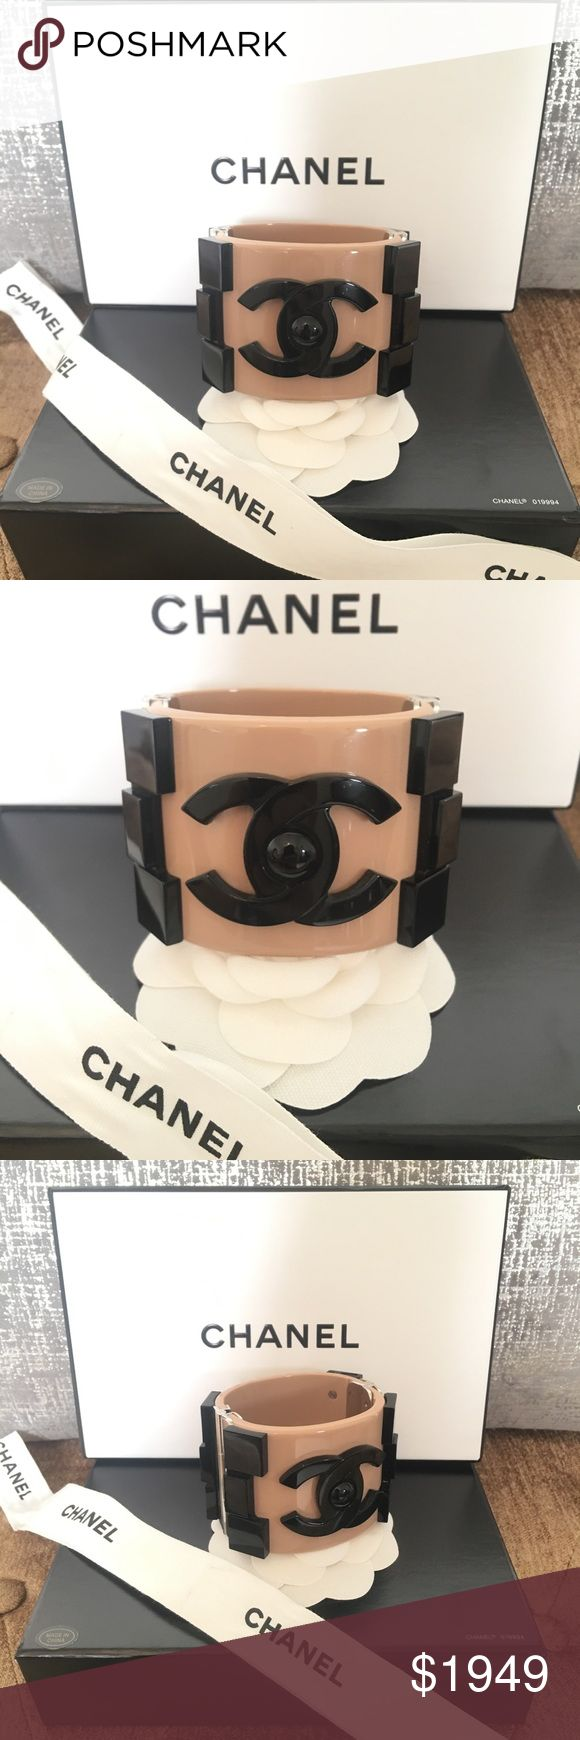 Chanel Limited Edition Boy Lego Cuff Bracelet Gorgeous Rare Limited Edition Chanel Lego Brick cuff bangle with push lock closure. Black and beige Plexiglass with CC logo. Silver hardware featuring a beige and tan color with the CC logo in black. One of a king and a must have for any Chanel Lover. Like New Condition. Comes with original box and pouch. CHANEL Jewelry Bracelets